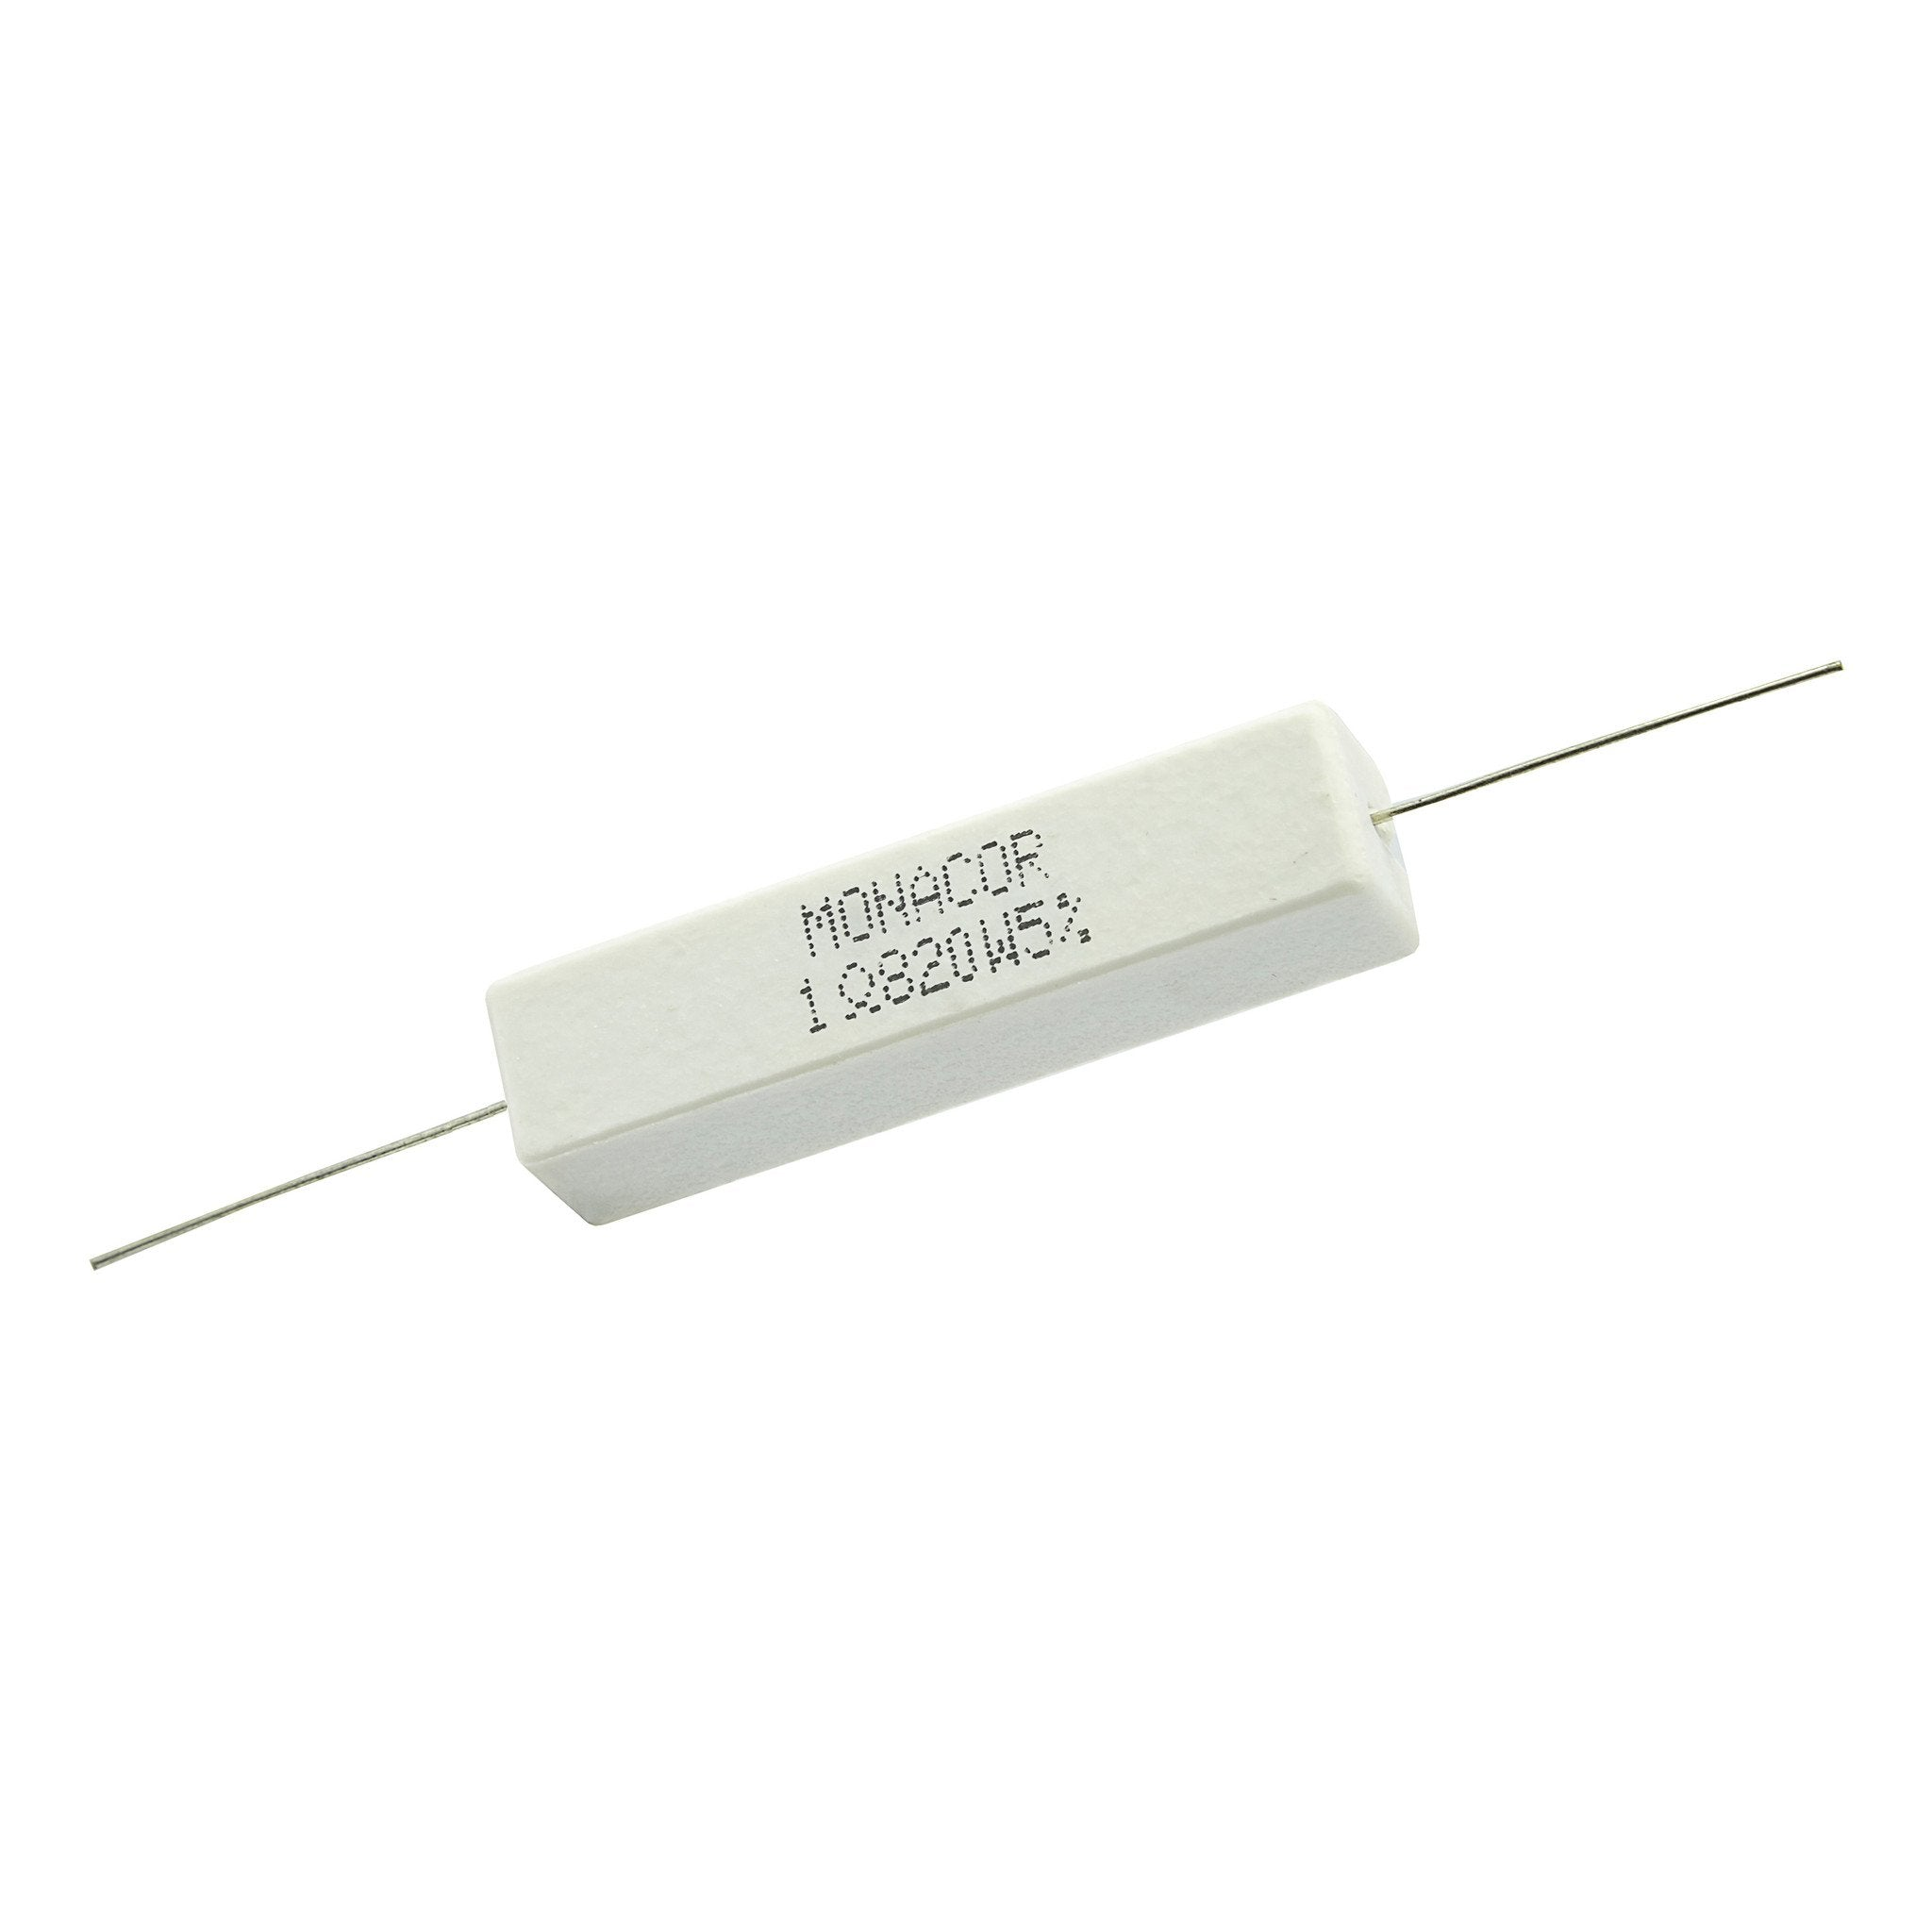 1.8 Ohm 20 Watt 5% Ceramic Wirewound Resistor - Willys-Hifi Ltd